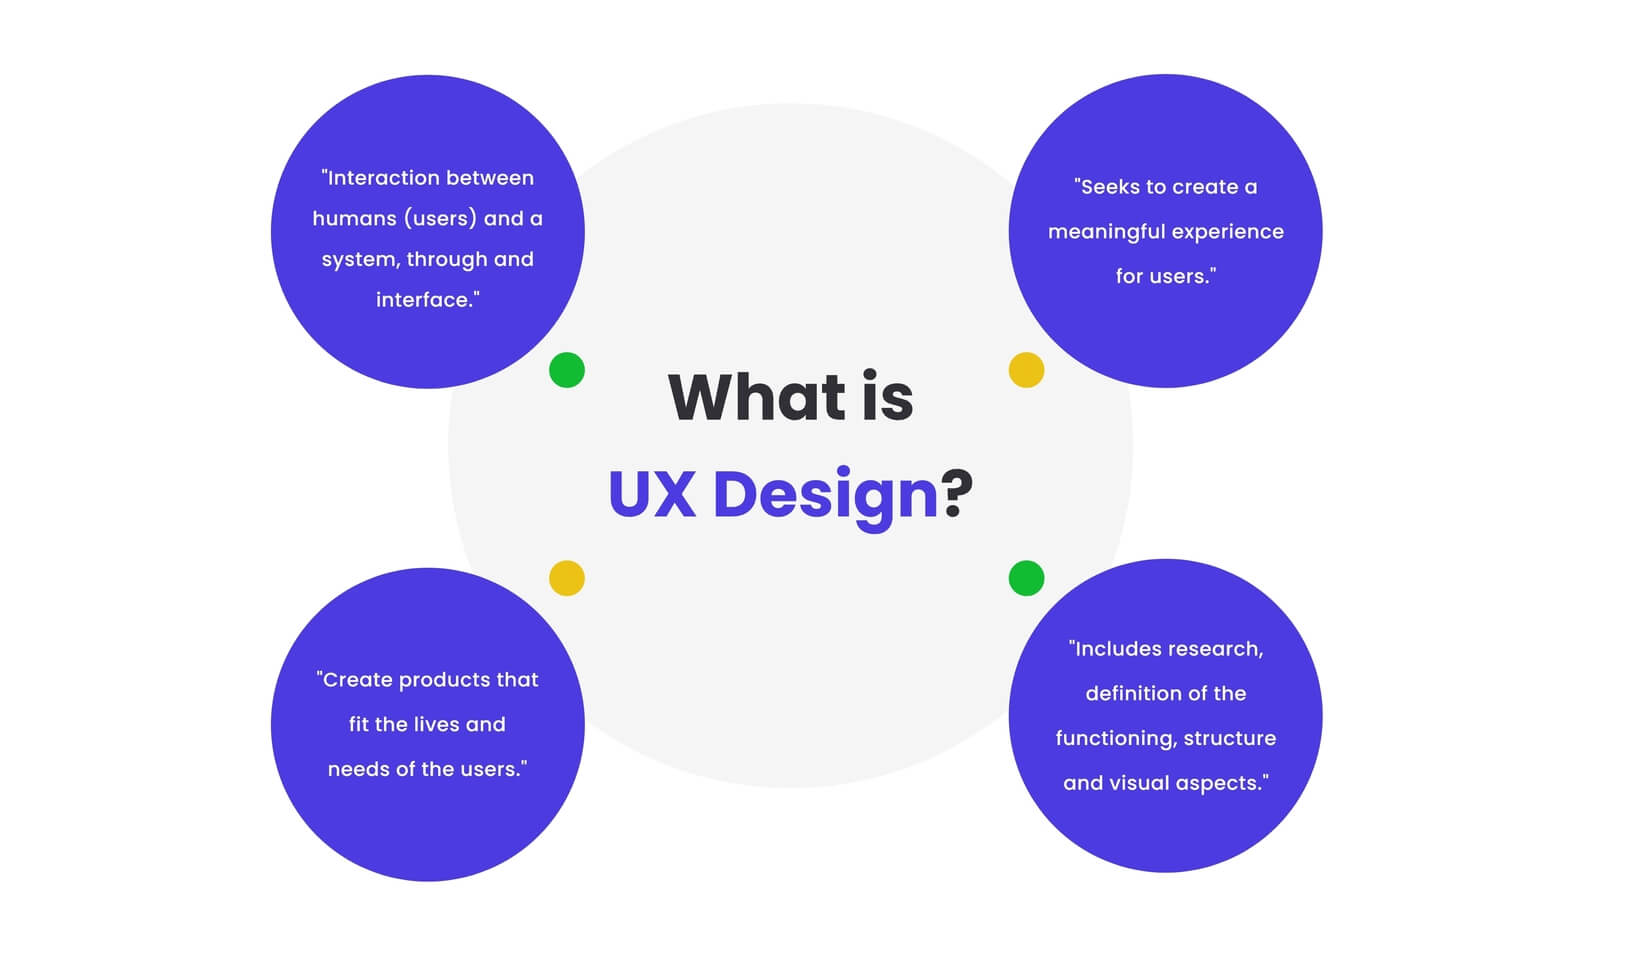 UX Design Principle - a meaningful user experience